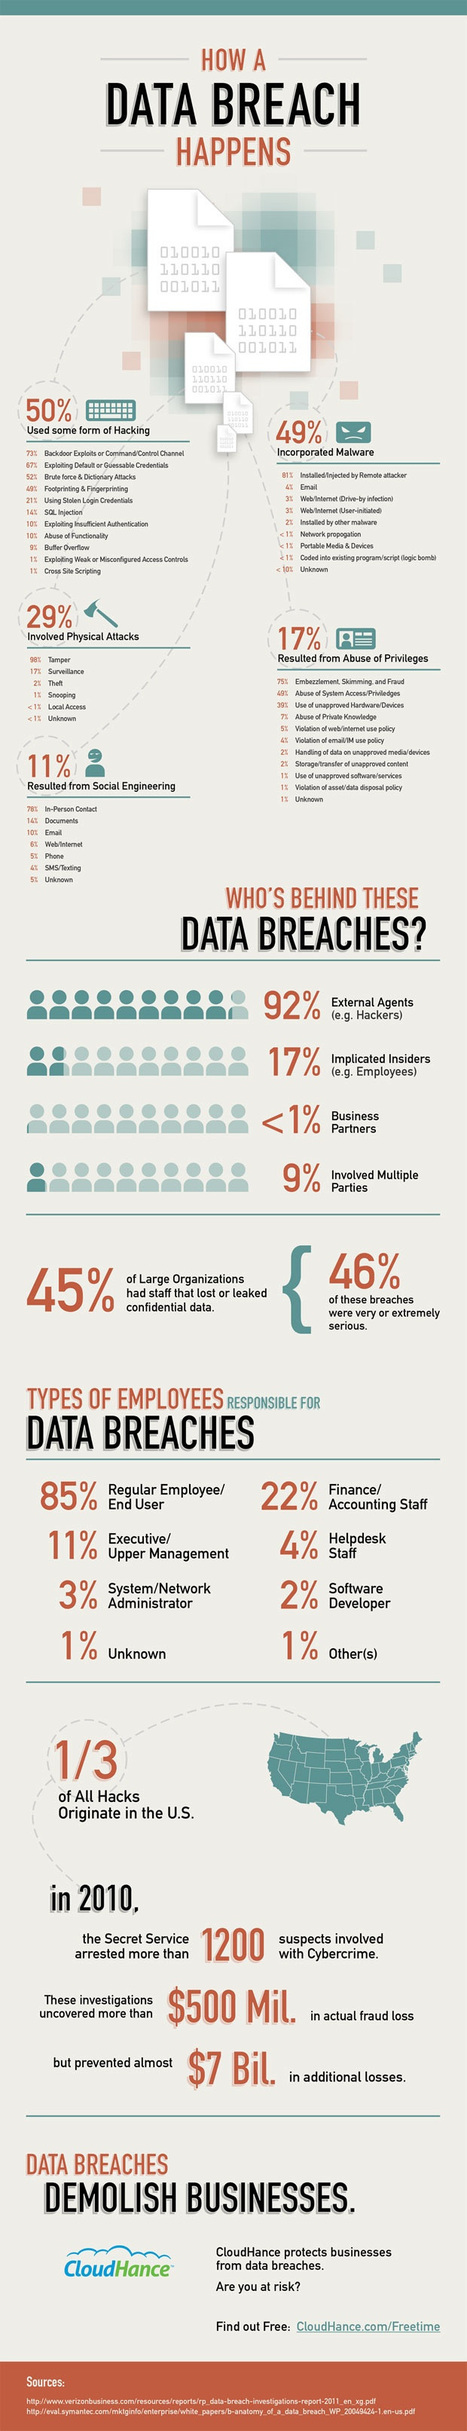 INFOGRAPHIC: How A Data Breach Happens | digitalassetman | Scoop.it